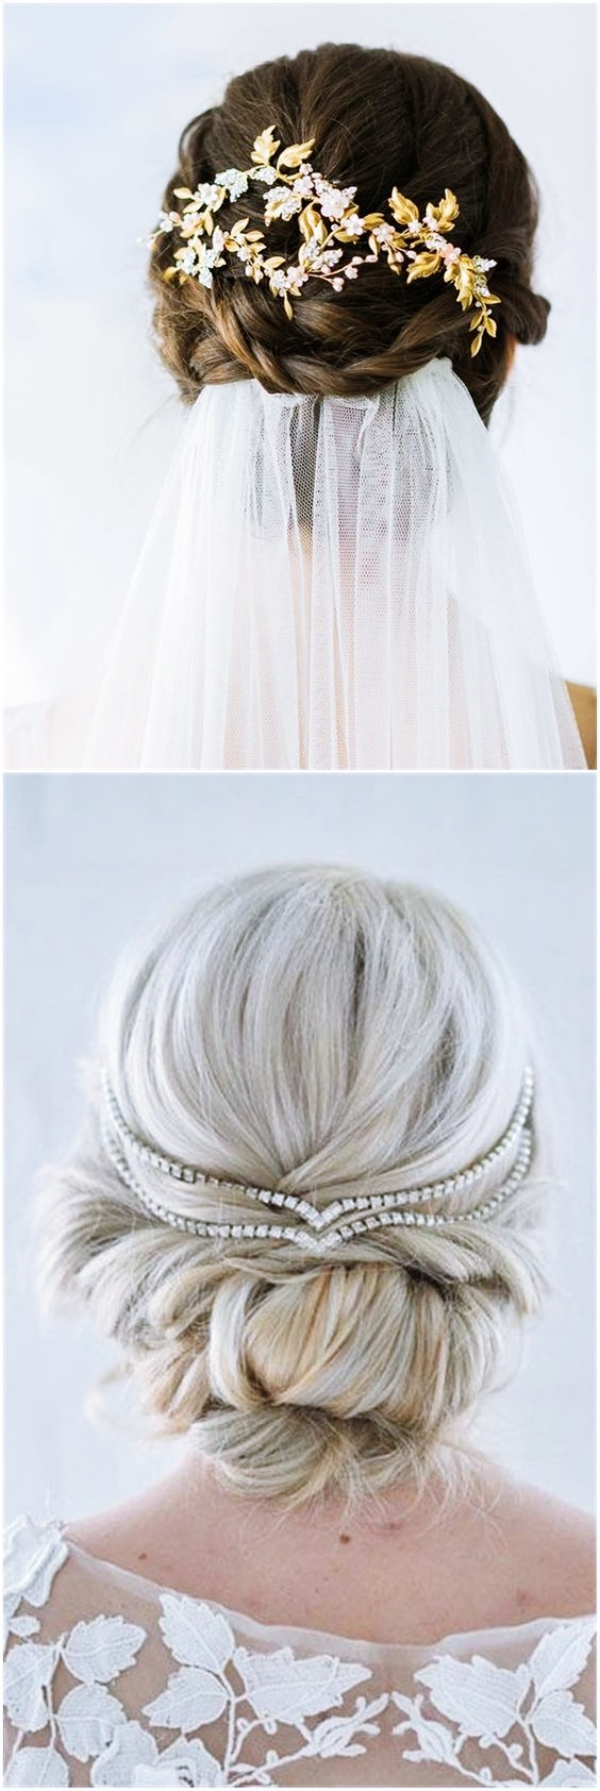 40 Gorgeous Wedding Hairstyles For Long Hair - Buzz 2018